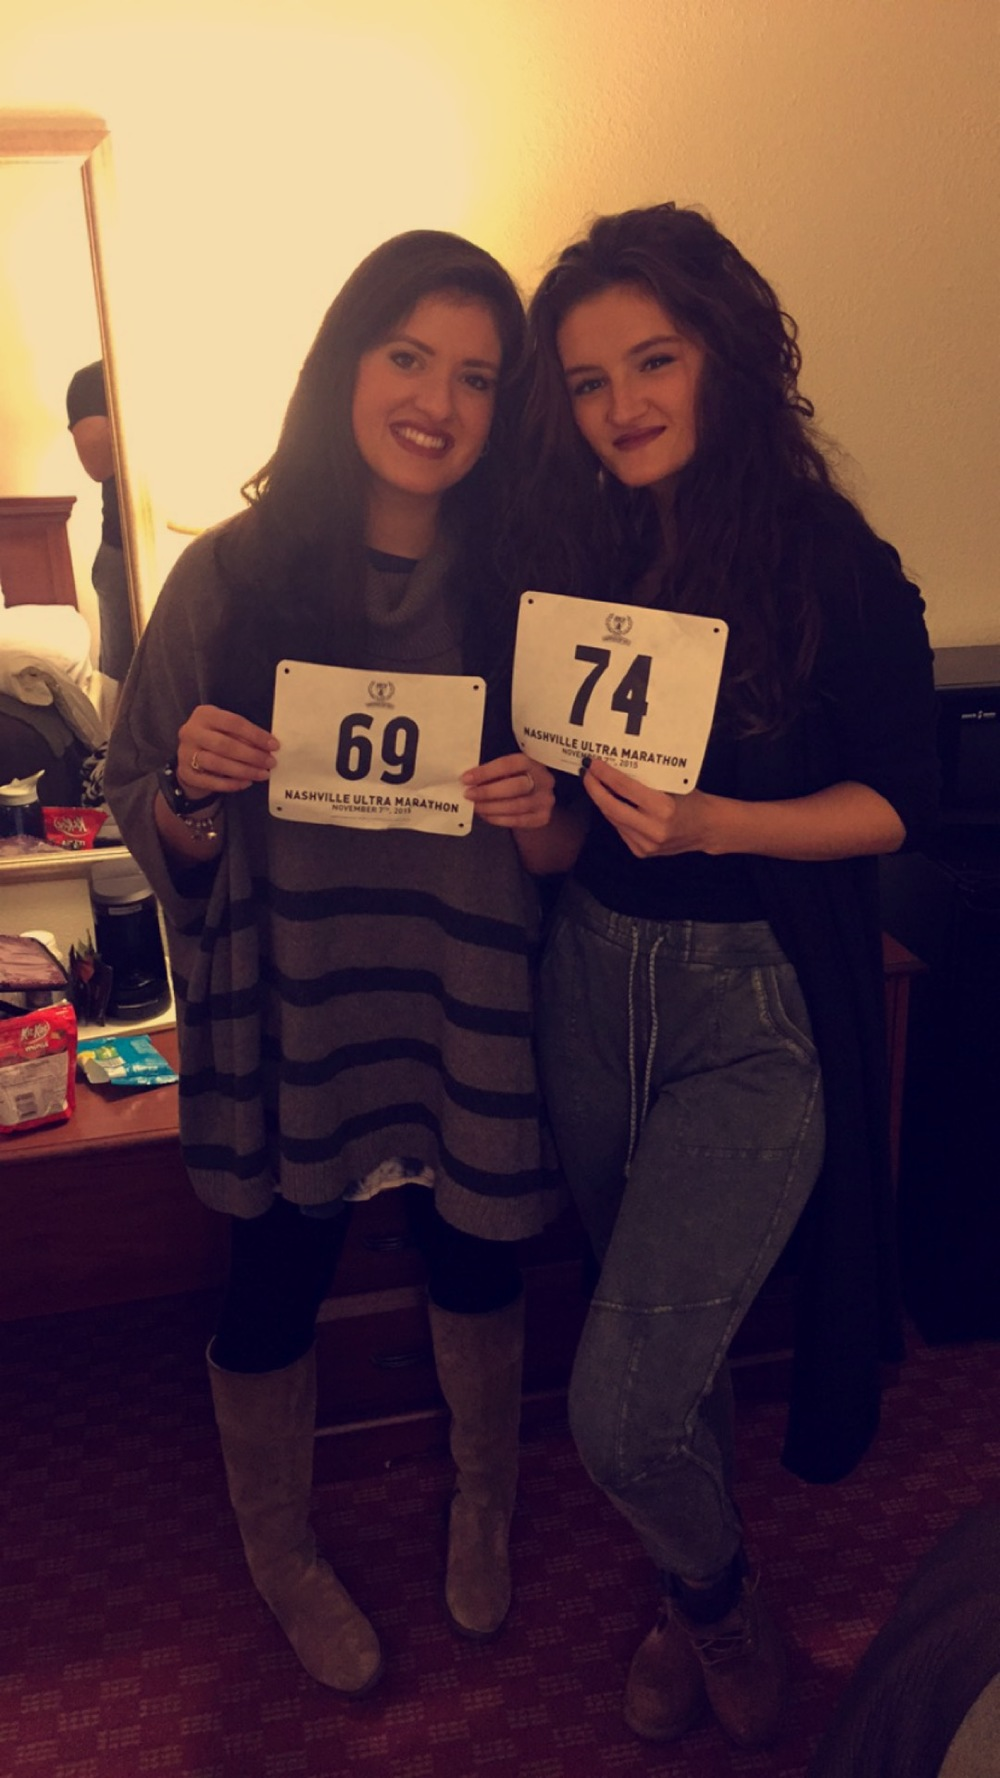 At the hotel with our race bibs